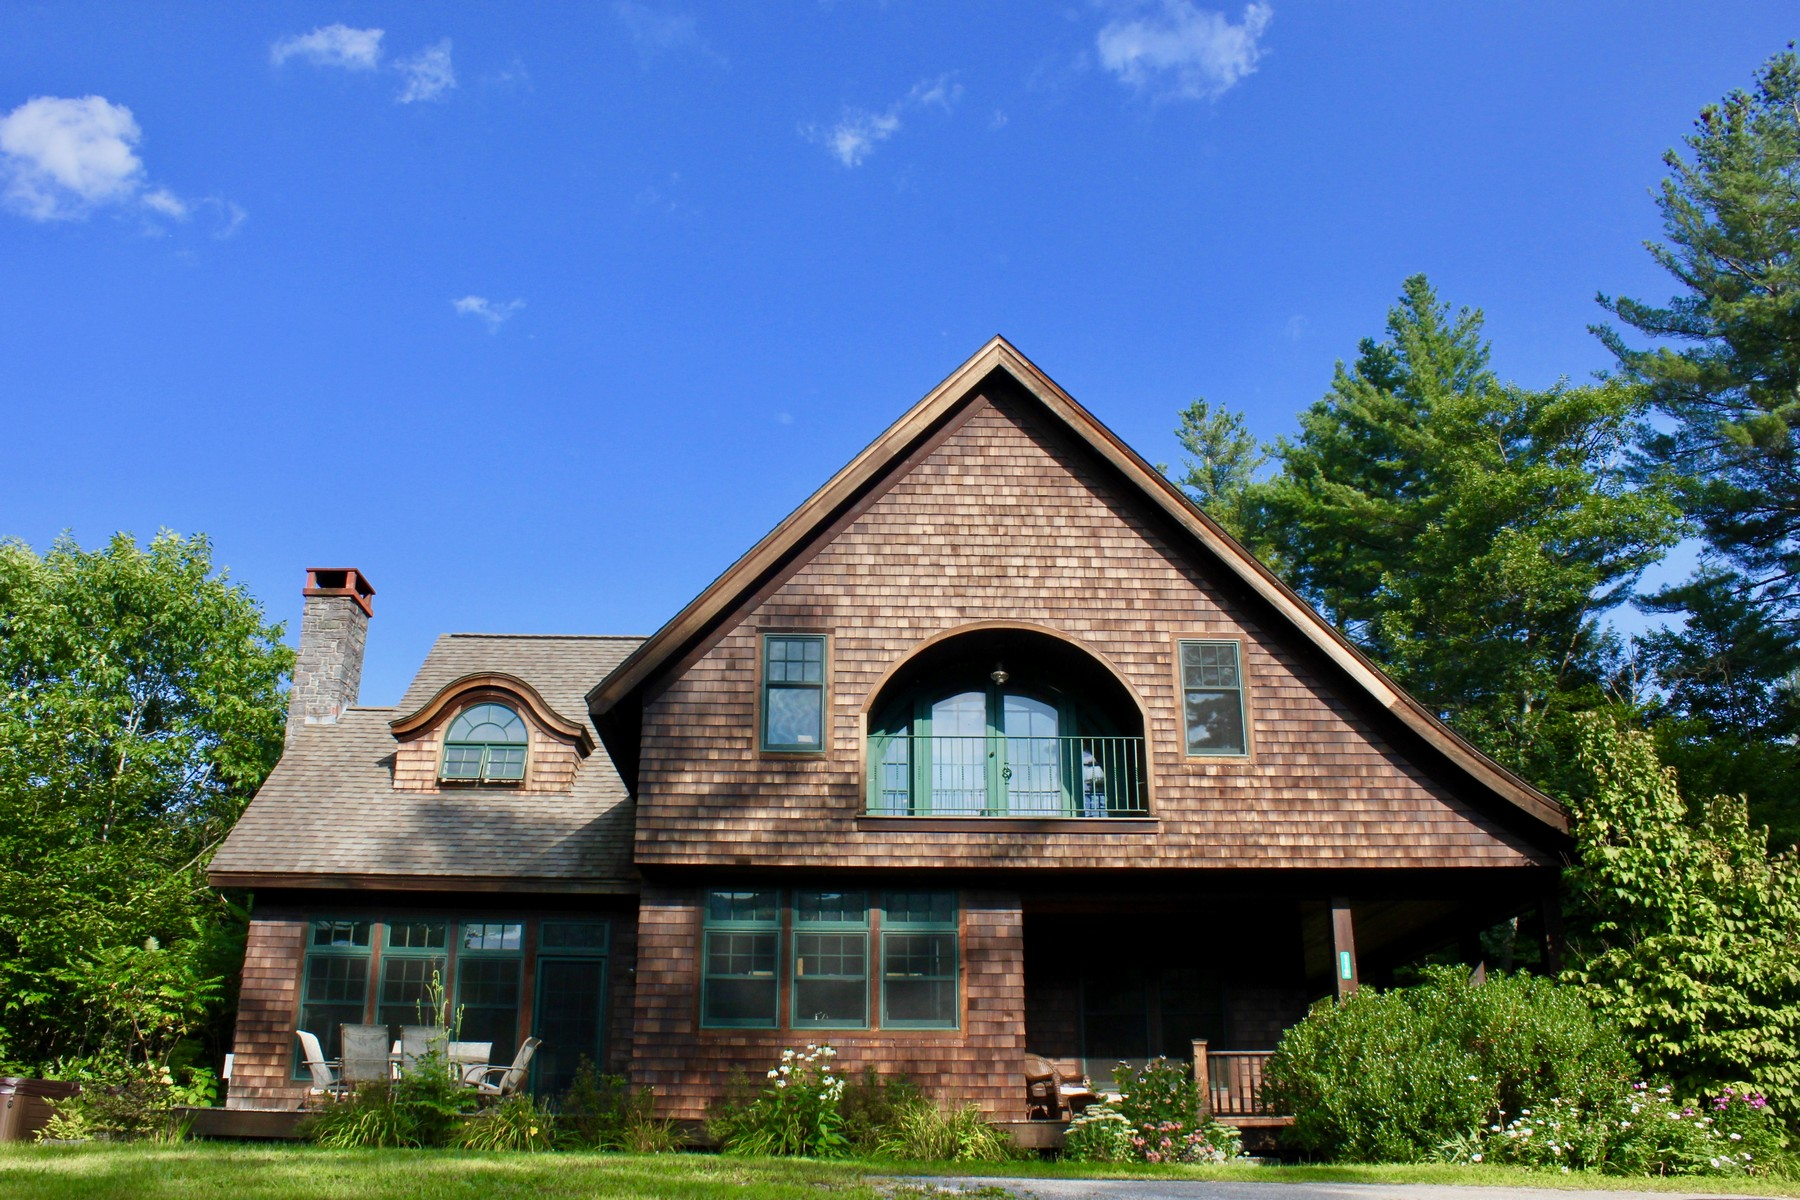 single family homes for Sale at Lake Rescue Adirondack 112 Fishing Access Rd Ludlow, Vermont 05149 United States